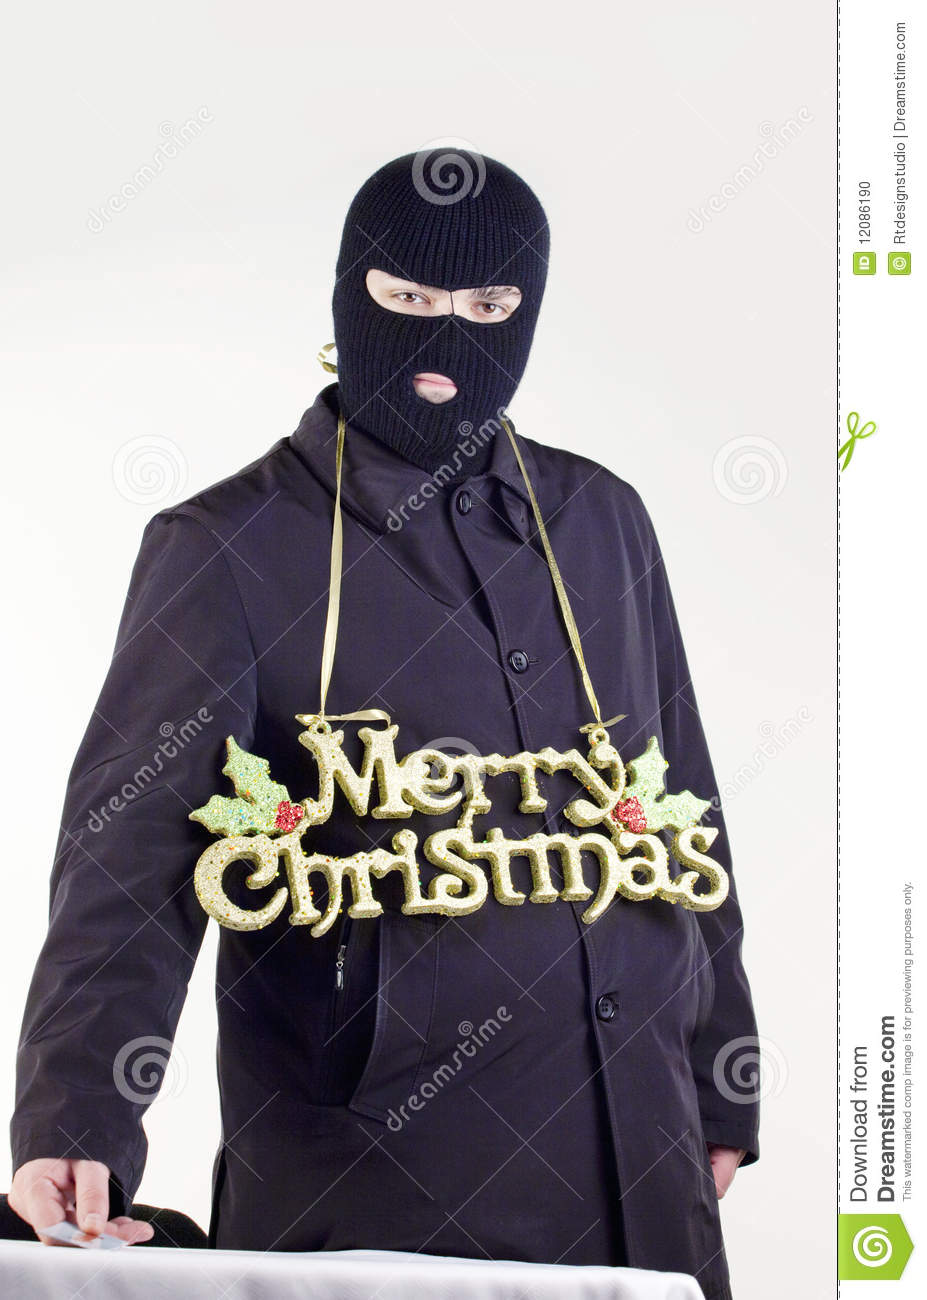 Gangster Merry Christmas Stock Photo - Image: 12086190